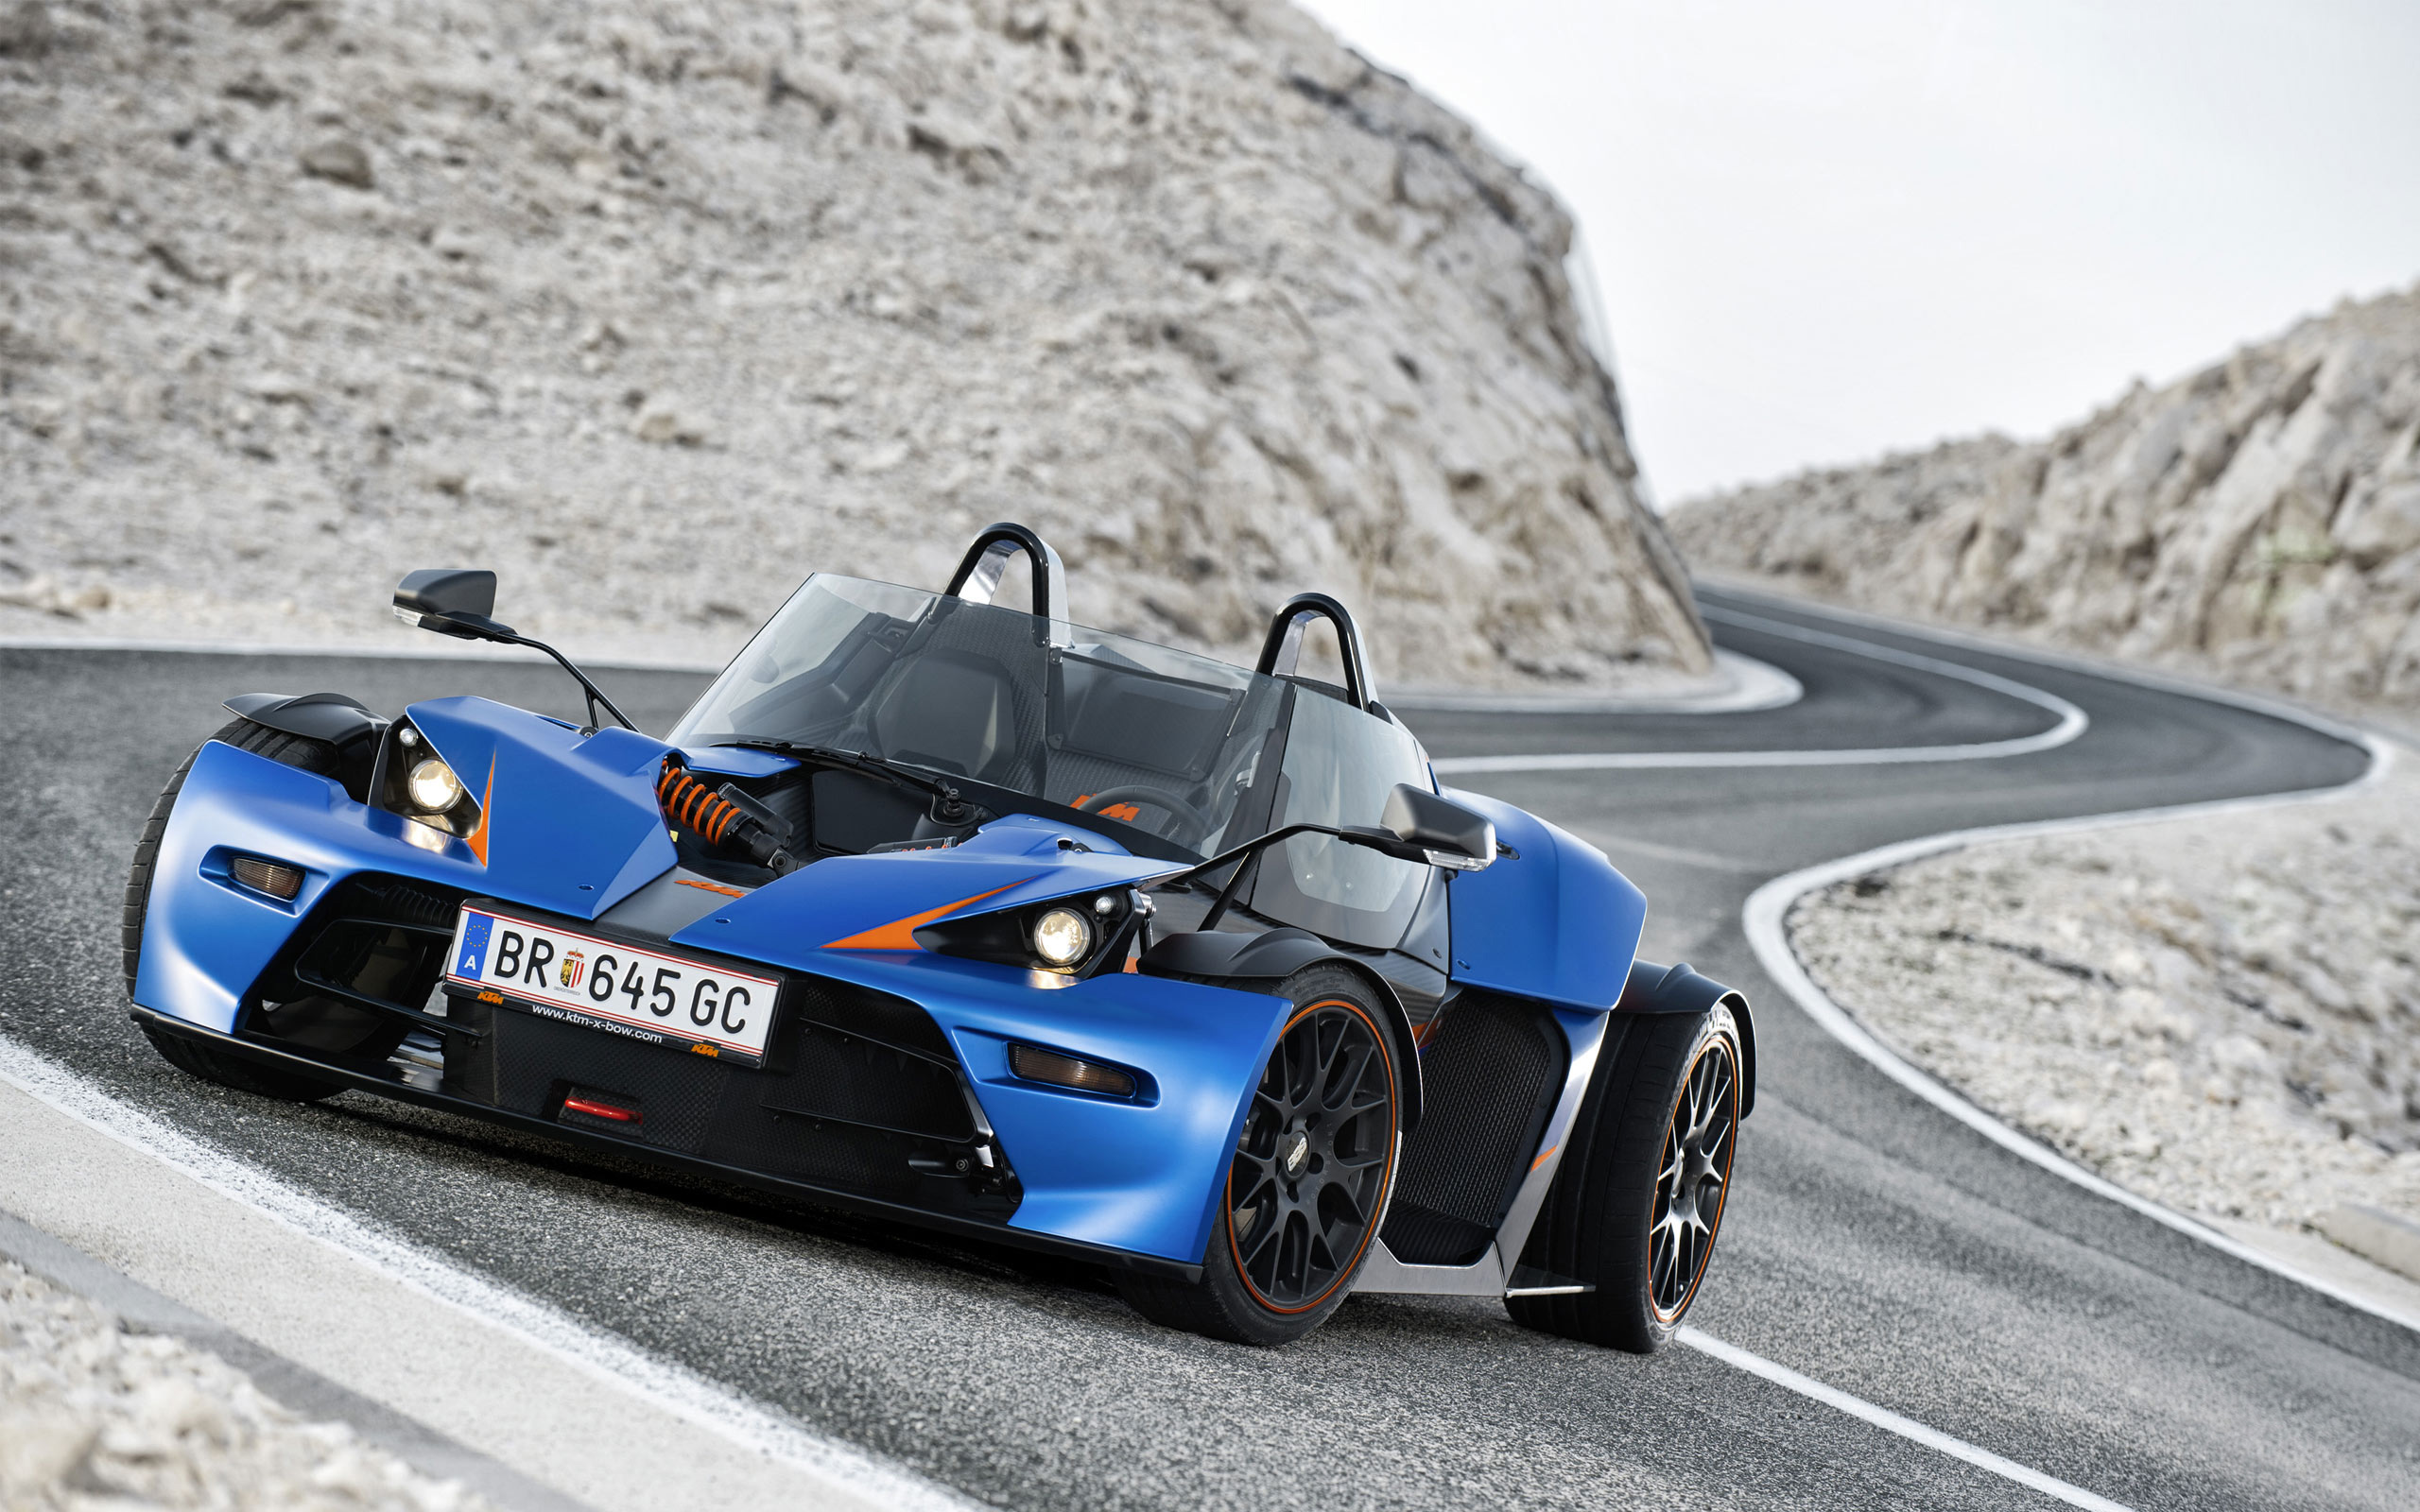 2013 ktm x bow gt wallpaper hd car wallpapers id 3288. Black Bedroom Furniture Sets. Home Design Ideas